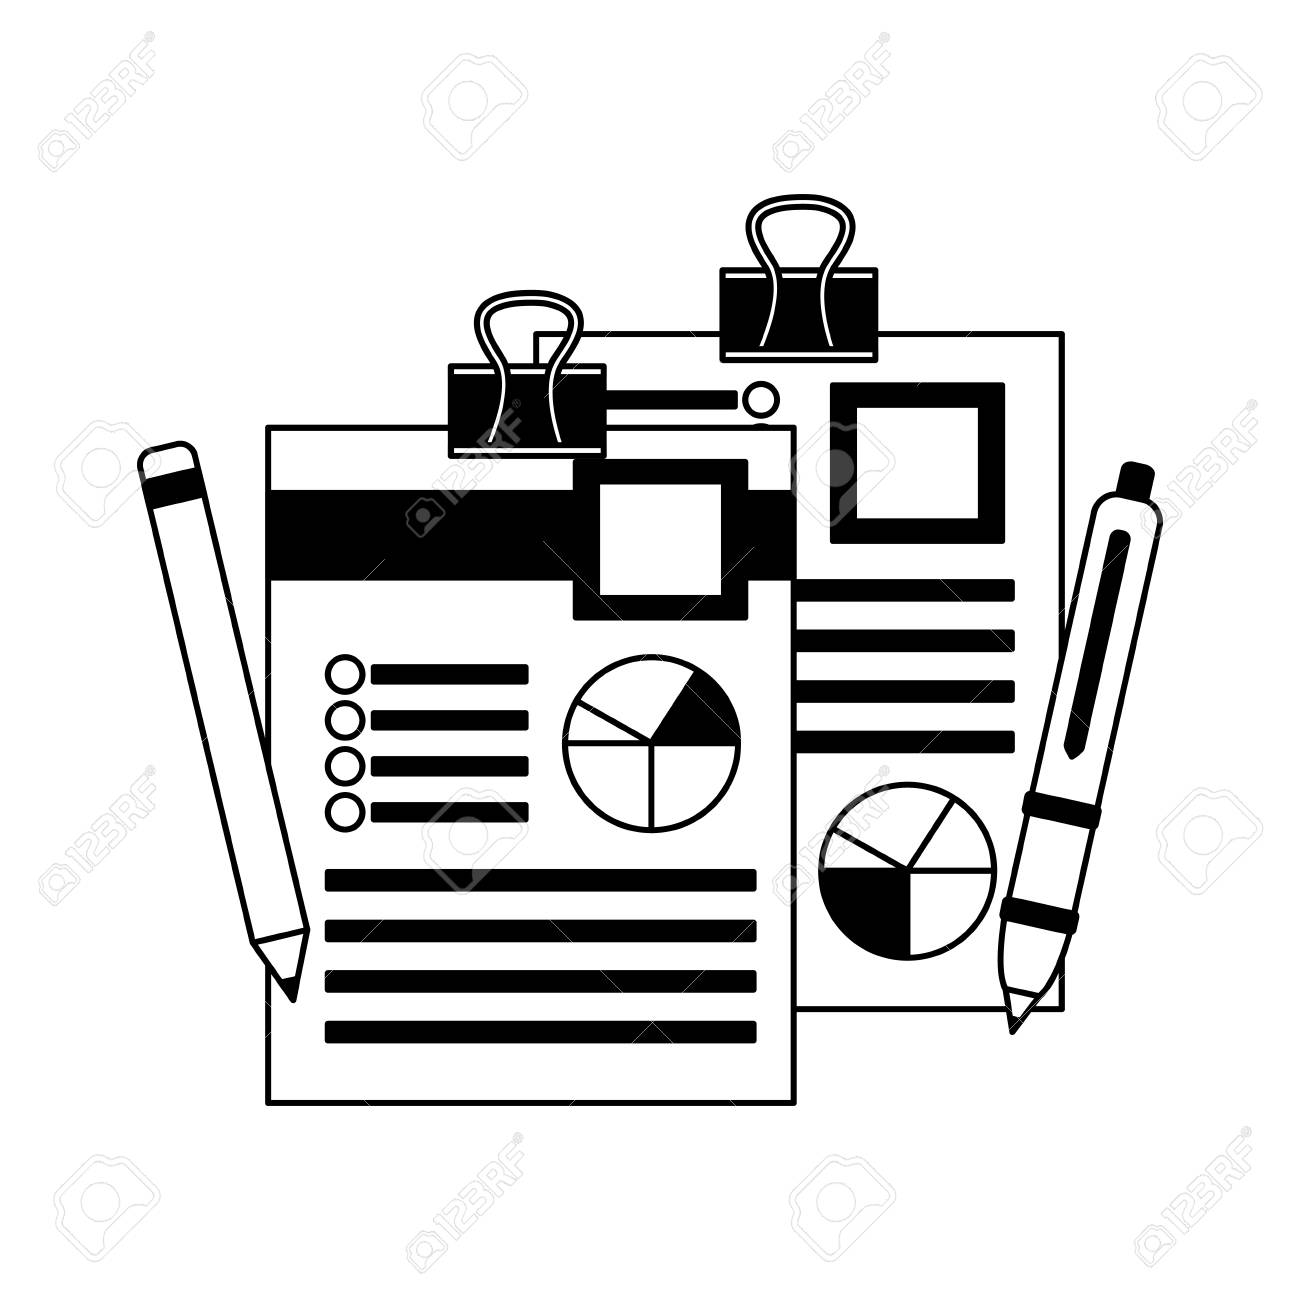 hight resolution of office paper diagram finance pen and pencil vector illustration monochrome stock vector 105561524